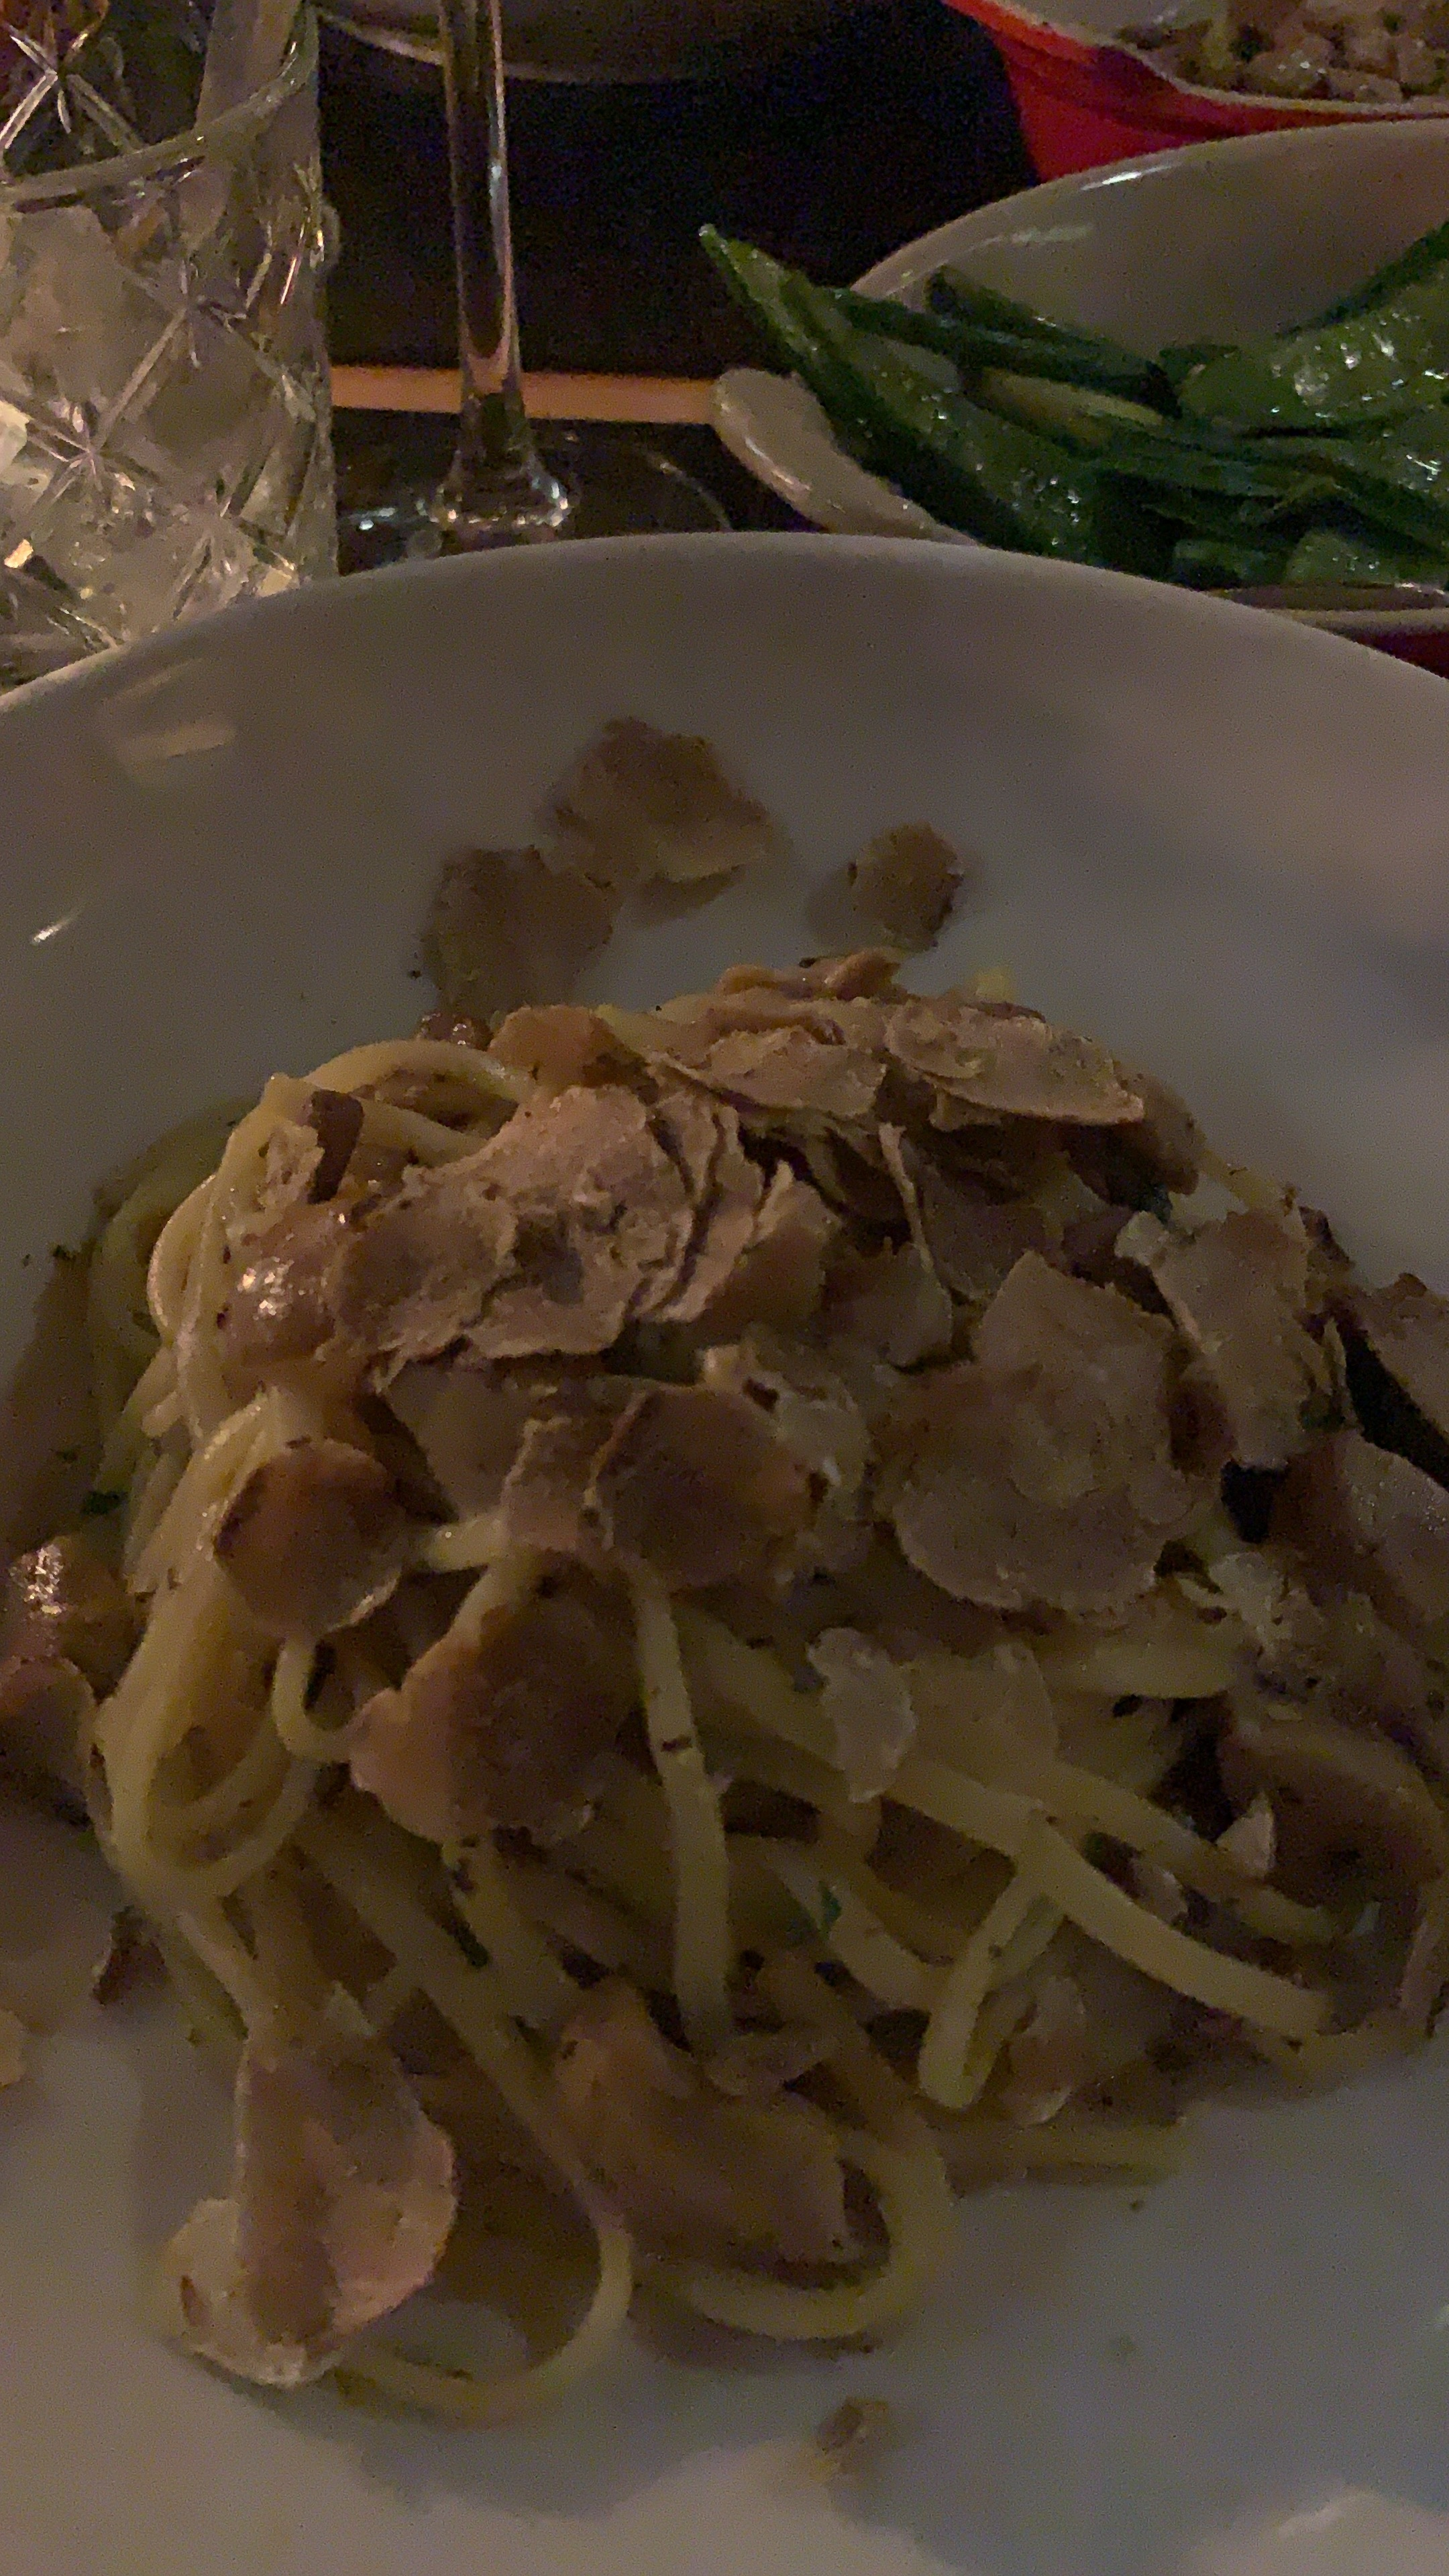 Exquisite truffle pasta at Mama Mia on the Croisette